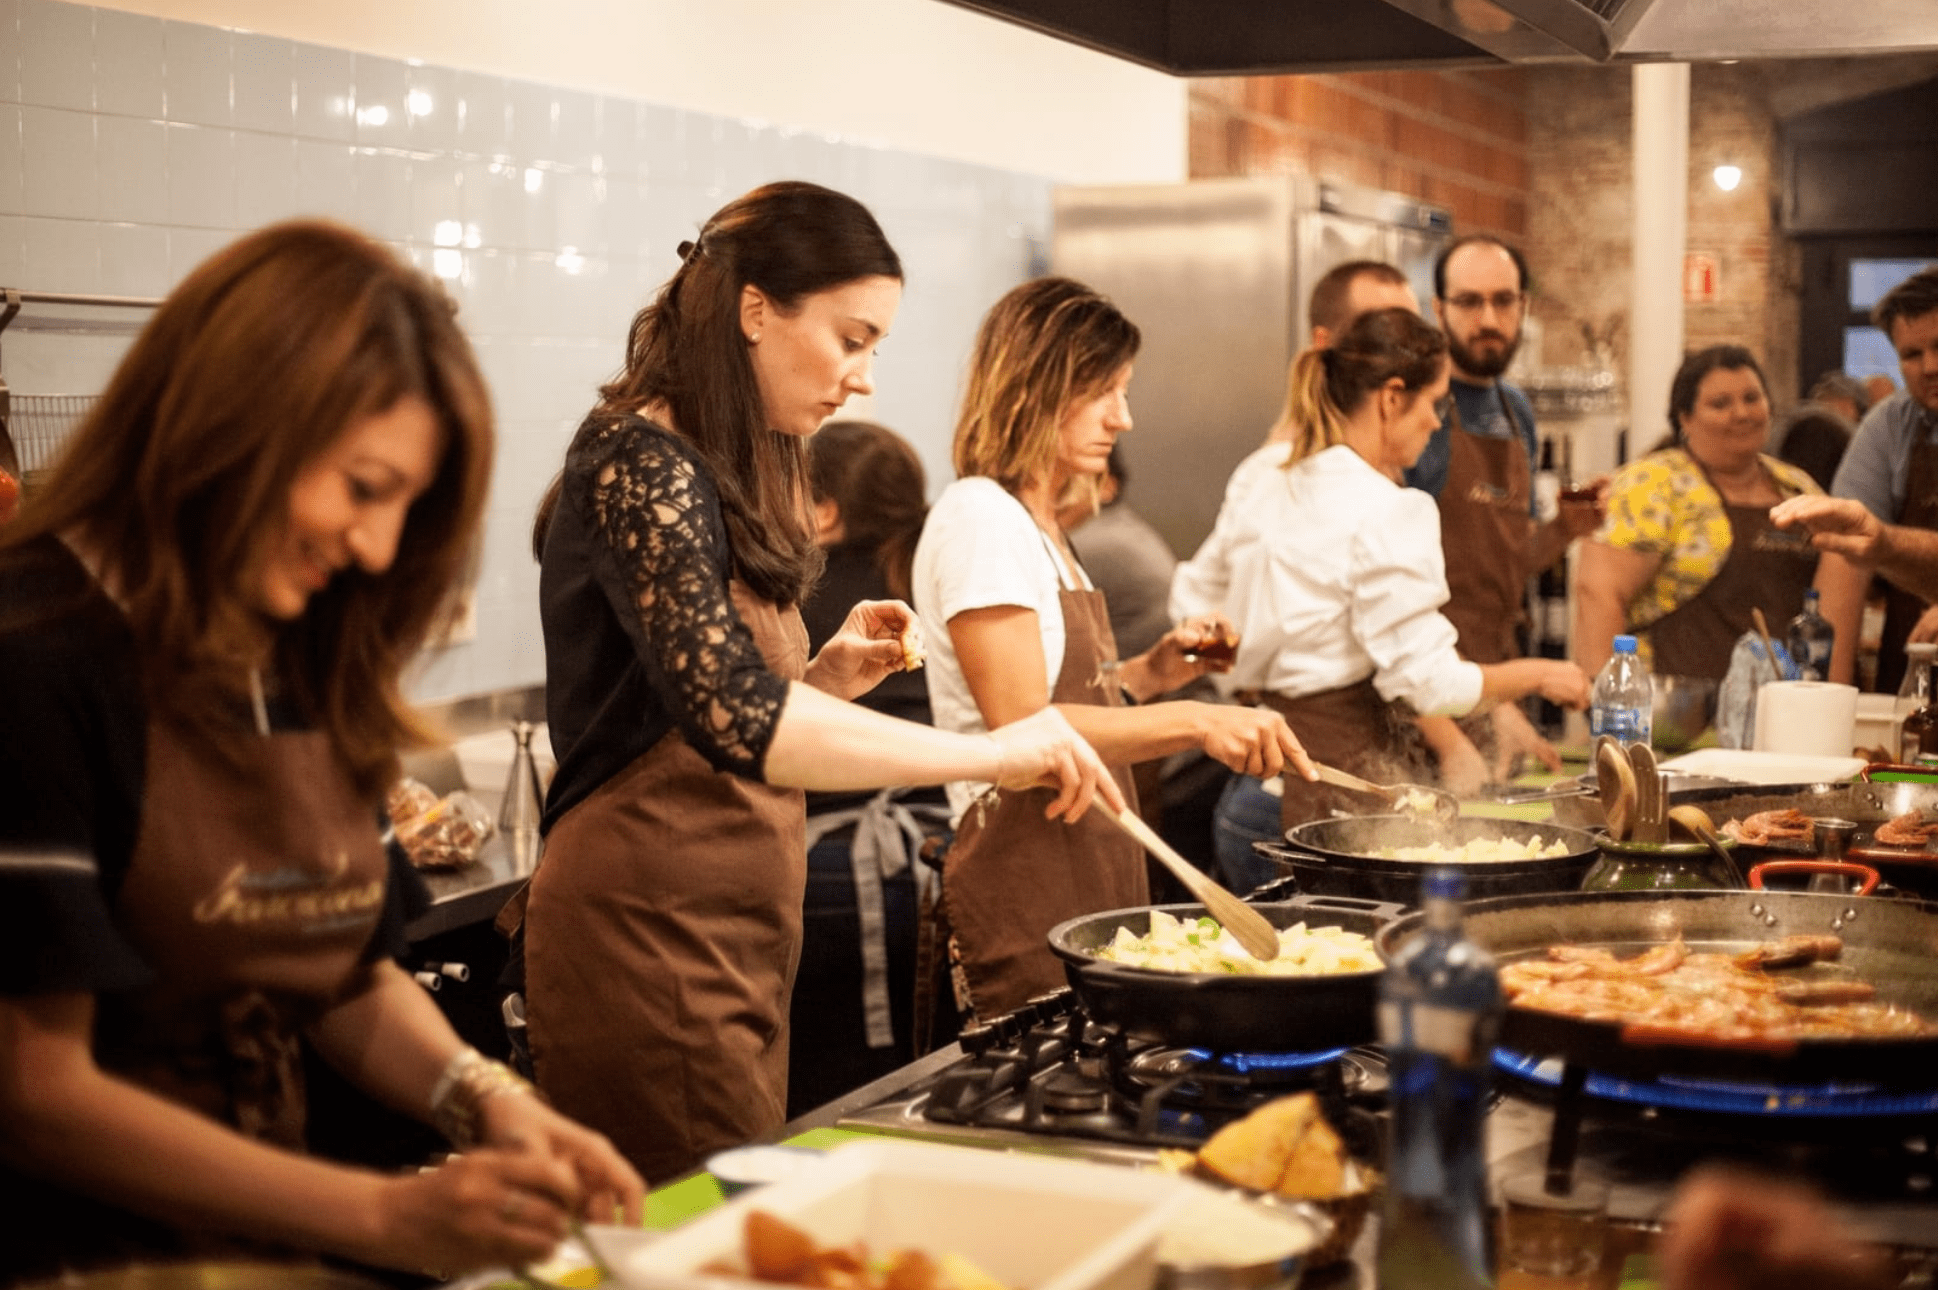 Cooking Class at a Company Retreat